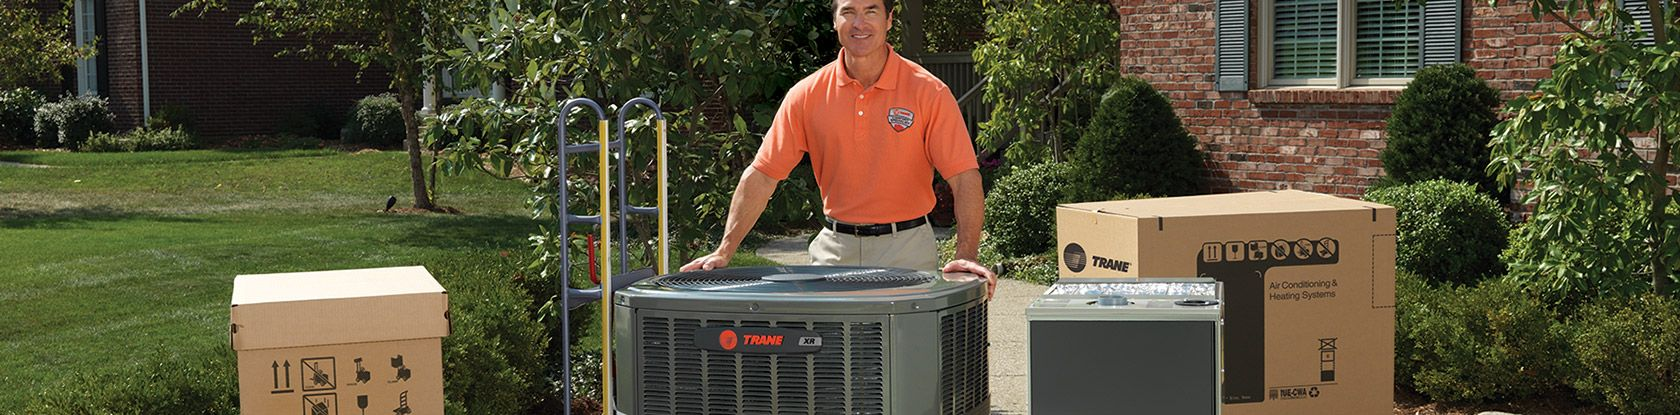 Heating Cooling Repair Service Contractor Near Buffalo Grove Rosement Mount Prospect In Chicag Heating Repair Furnace Repair Hvac Repair